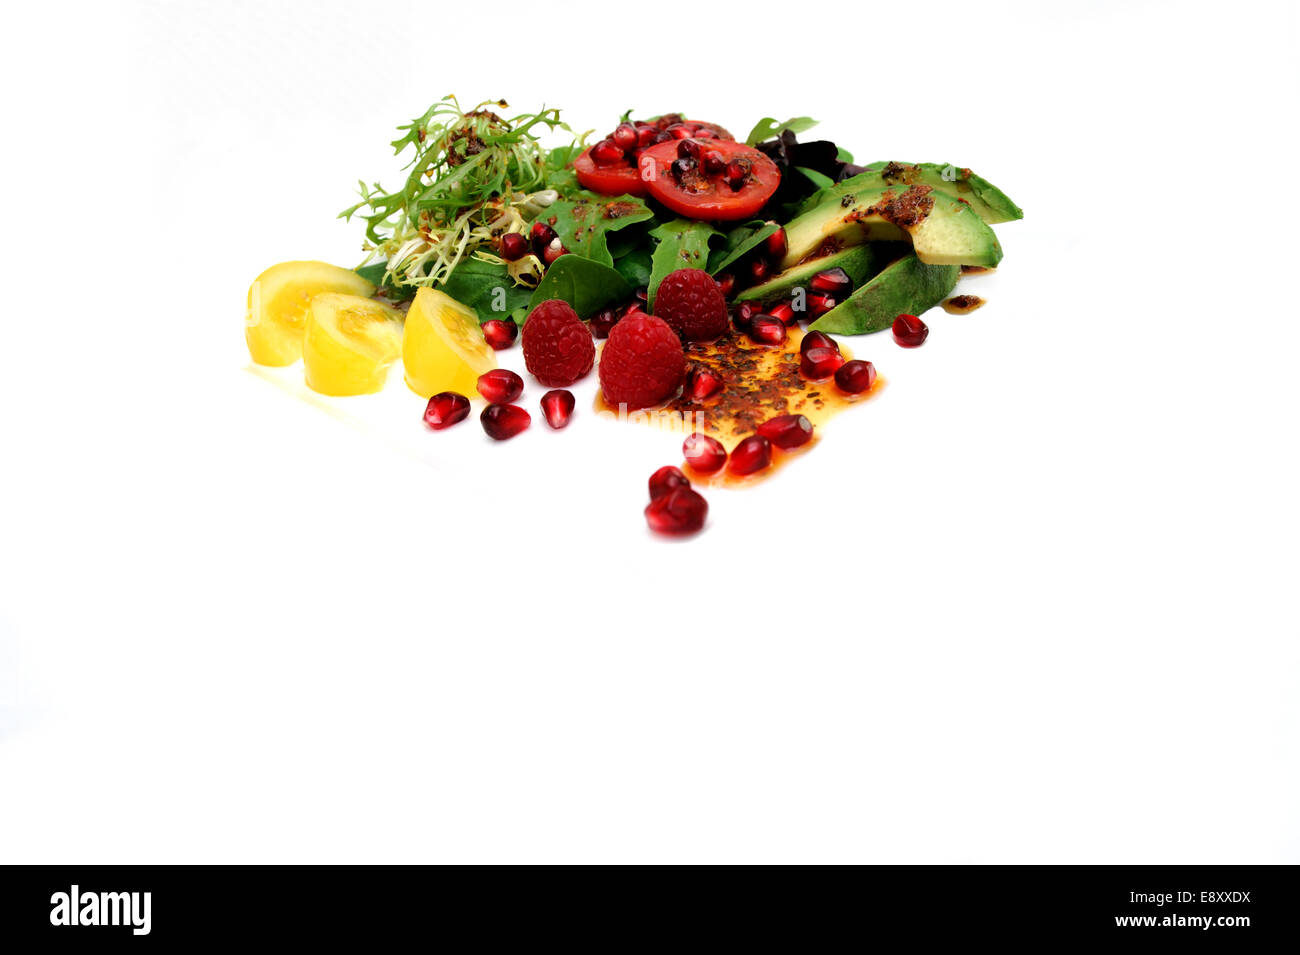 Salad On White - Stock Image